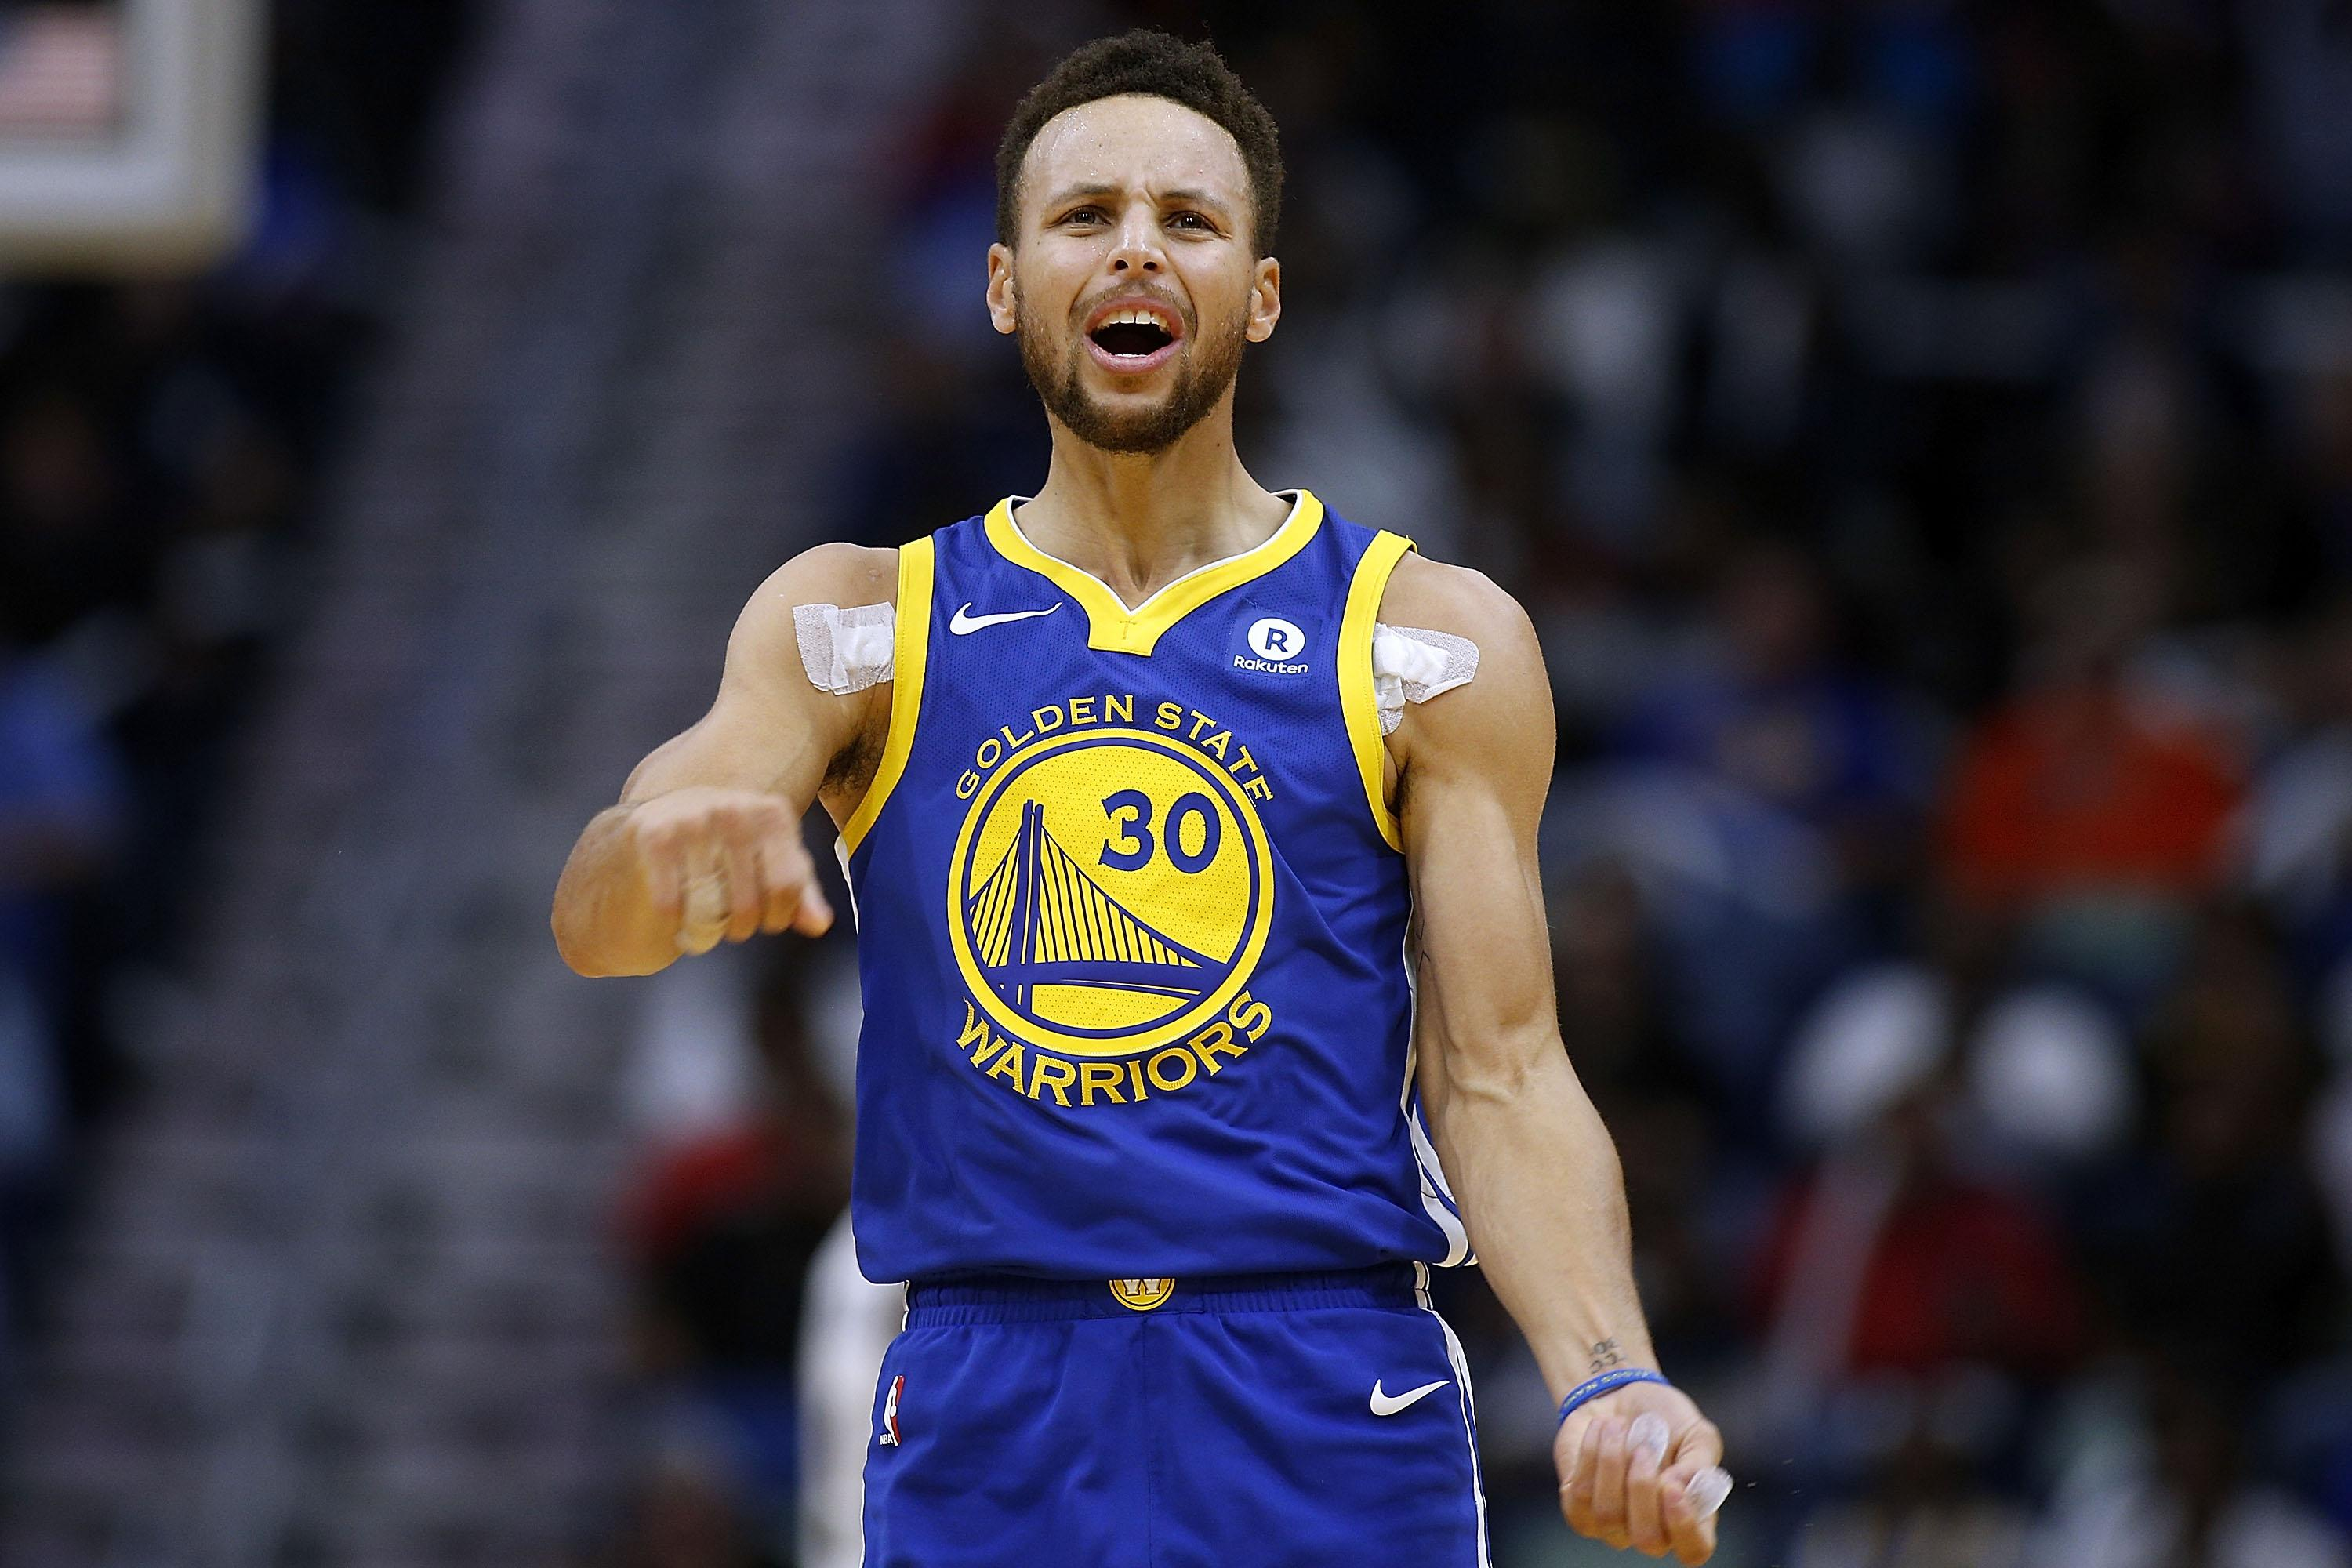 Warriors' Stephen Curry has no structural damage in ankle